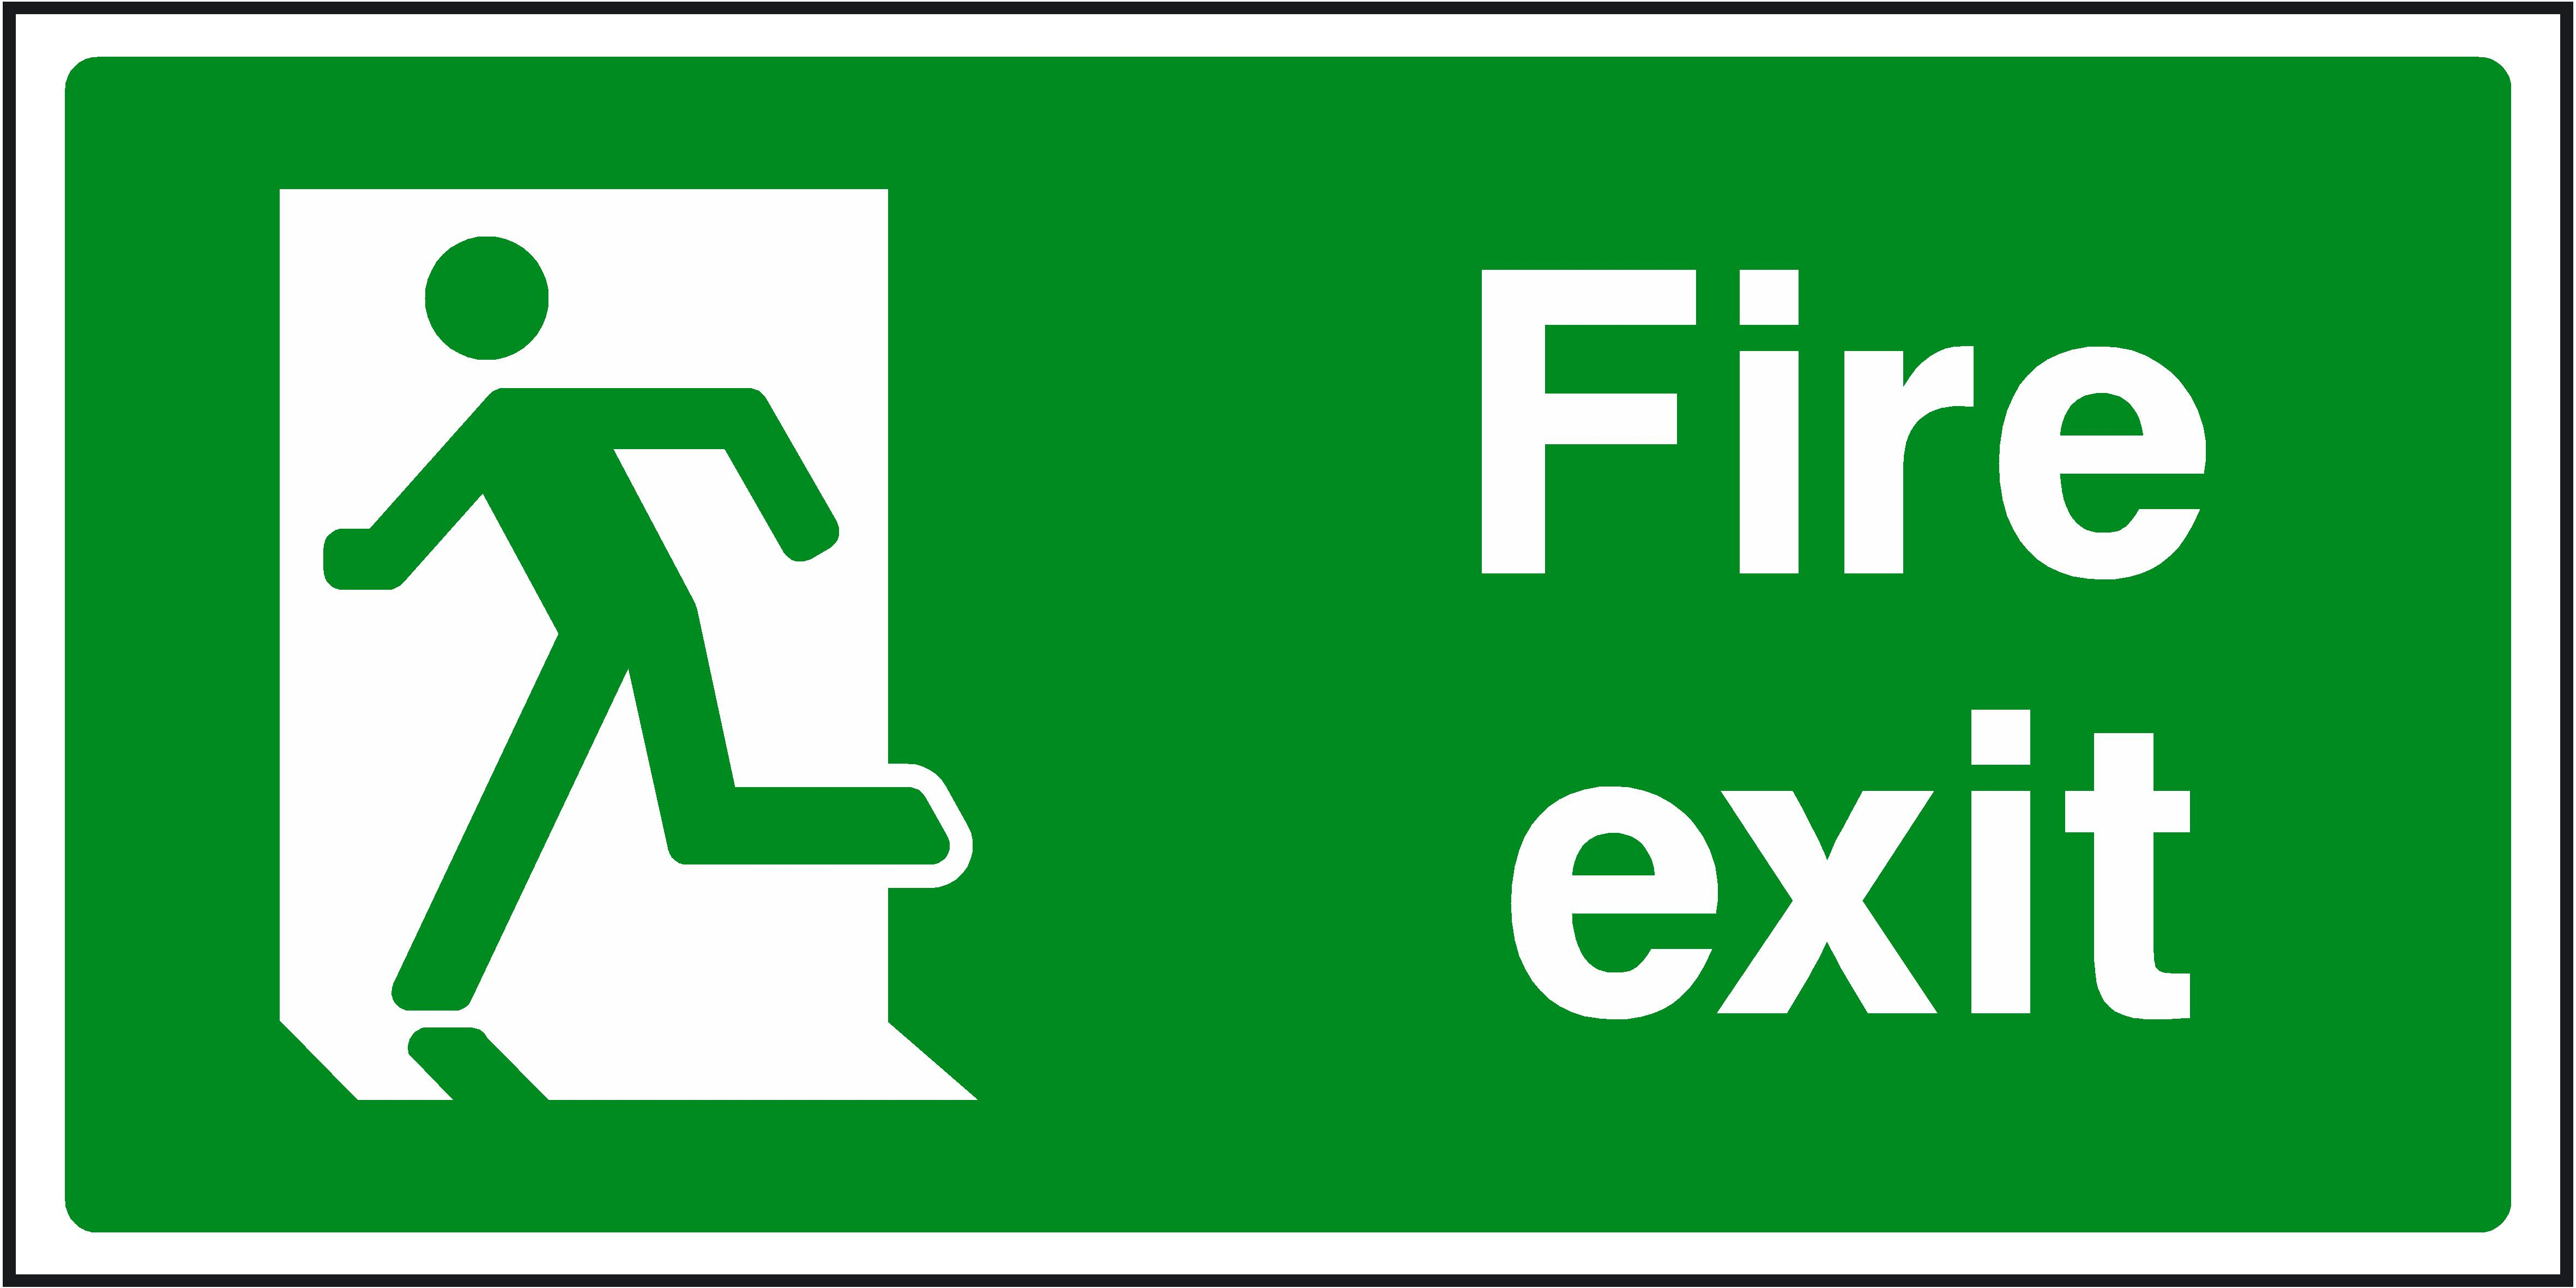 Free Exit Signs Pictures, Download Free Clip Art, Free Clip Art On - Free Printable No Exit Signs